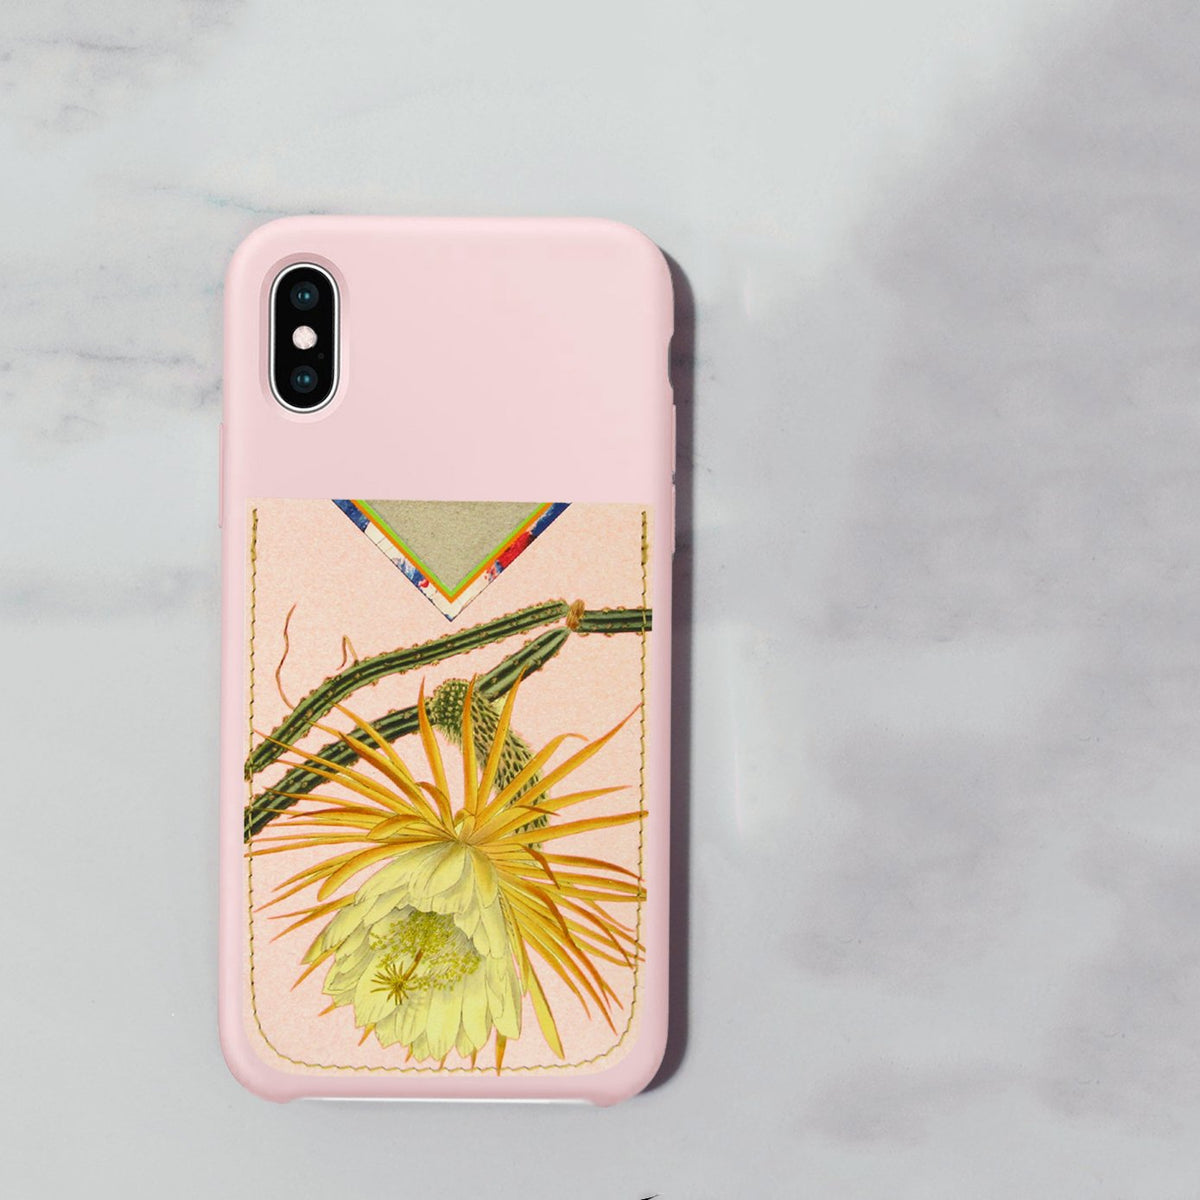 Leather Card Holder / Phone Sticker Wallet Pocket - Cactus Flower Wallet Tovi Sorga With Adhesive Sticker Backing for Phones Without personalisation Peach